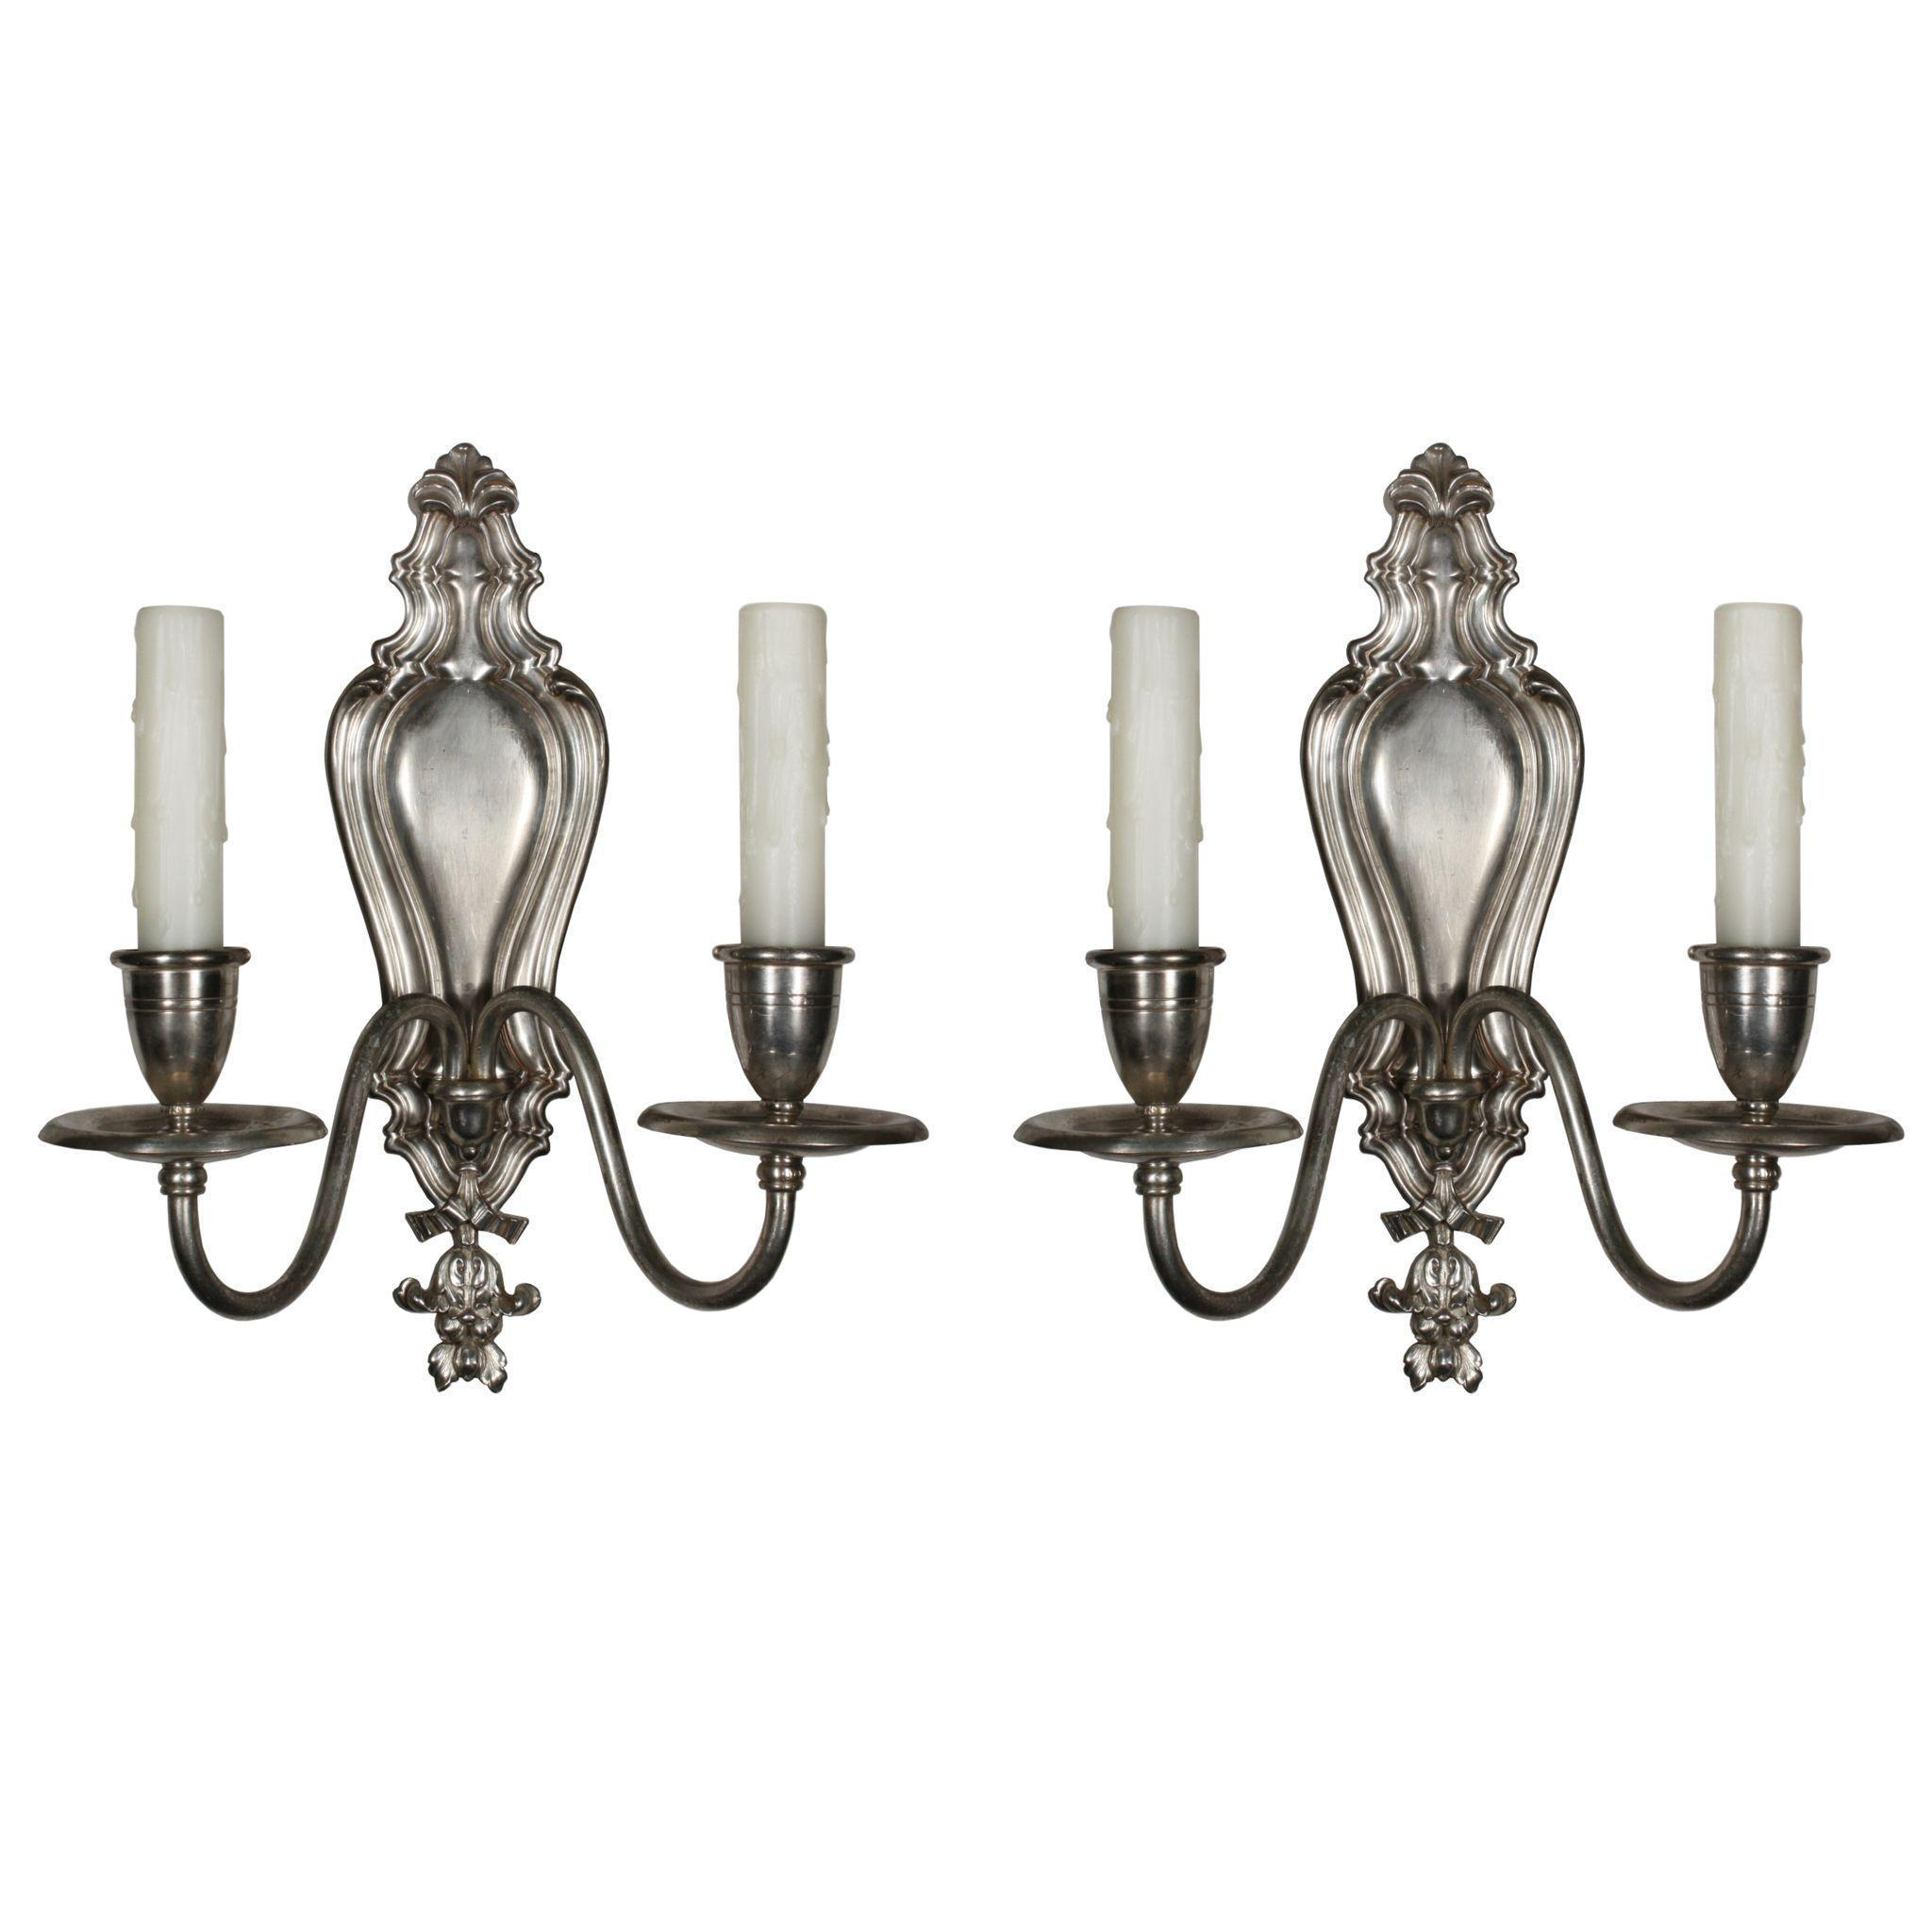 Elegant Pair of Antique Neoclassical Sconces by Caldwell, Silver Plated